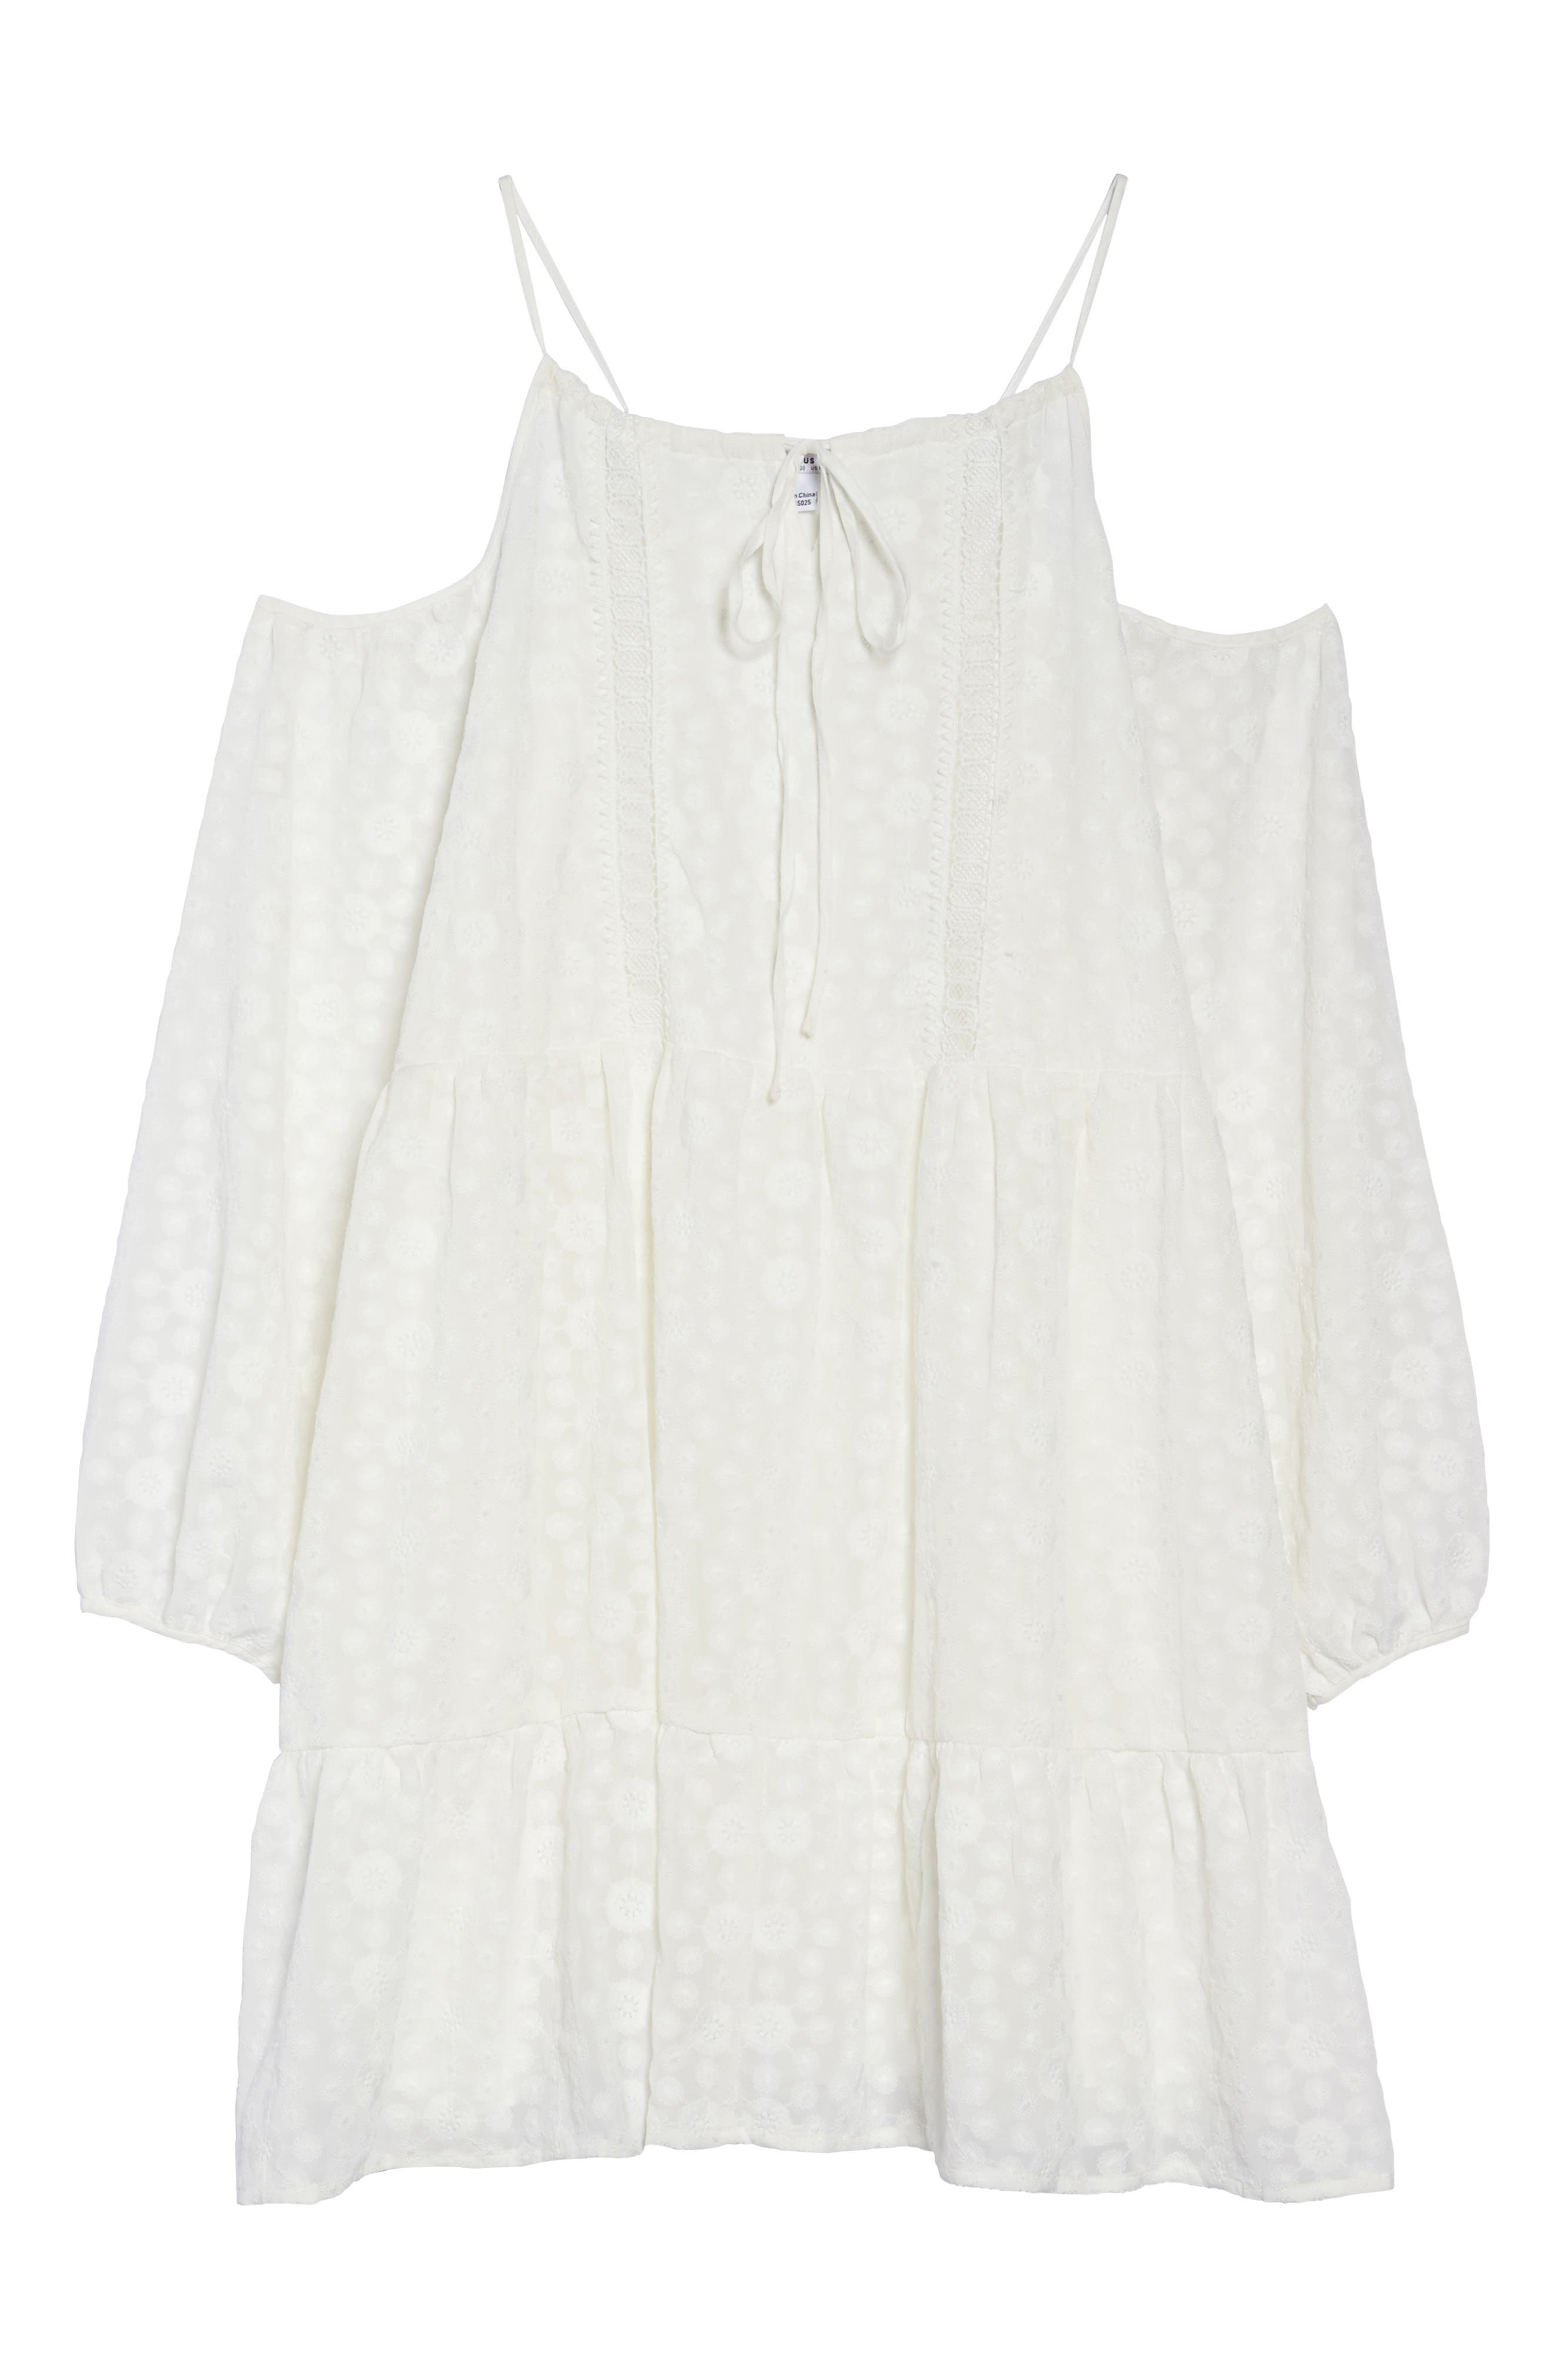 Off the Shoulder Embroidered Trapeze Dress,                             Alternate thumbnail 6, color,                             White